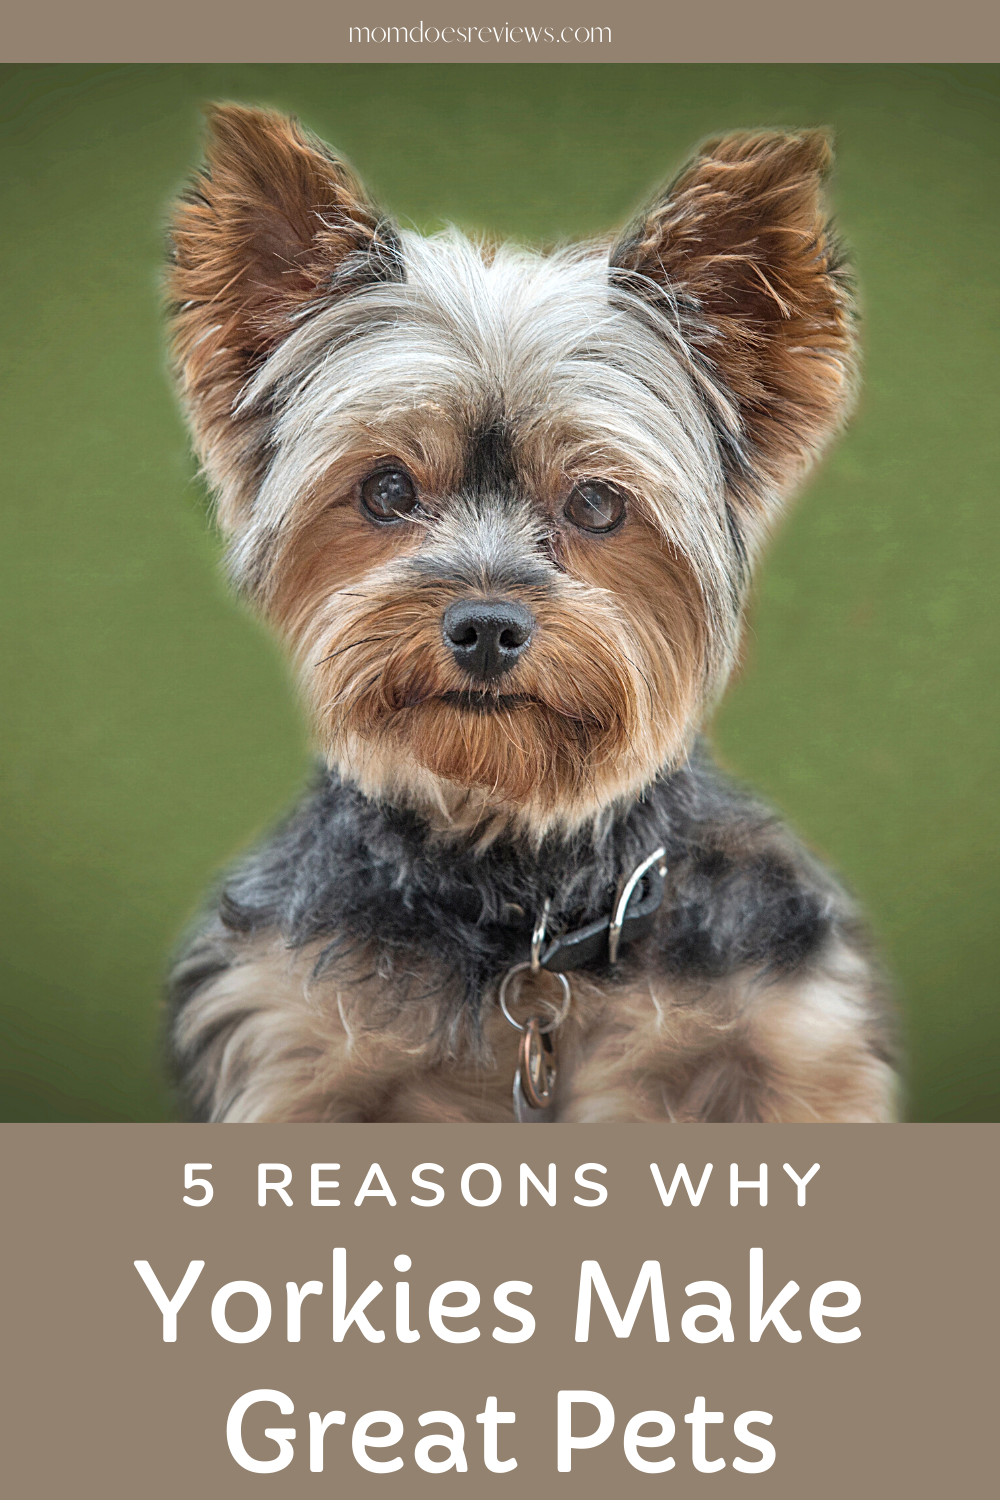 5 Reasons Why Yorkies Make Great Pets for Millennials